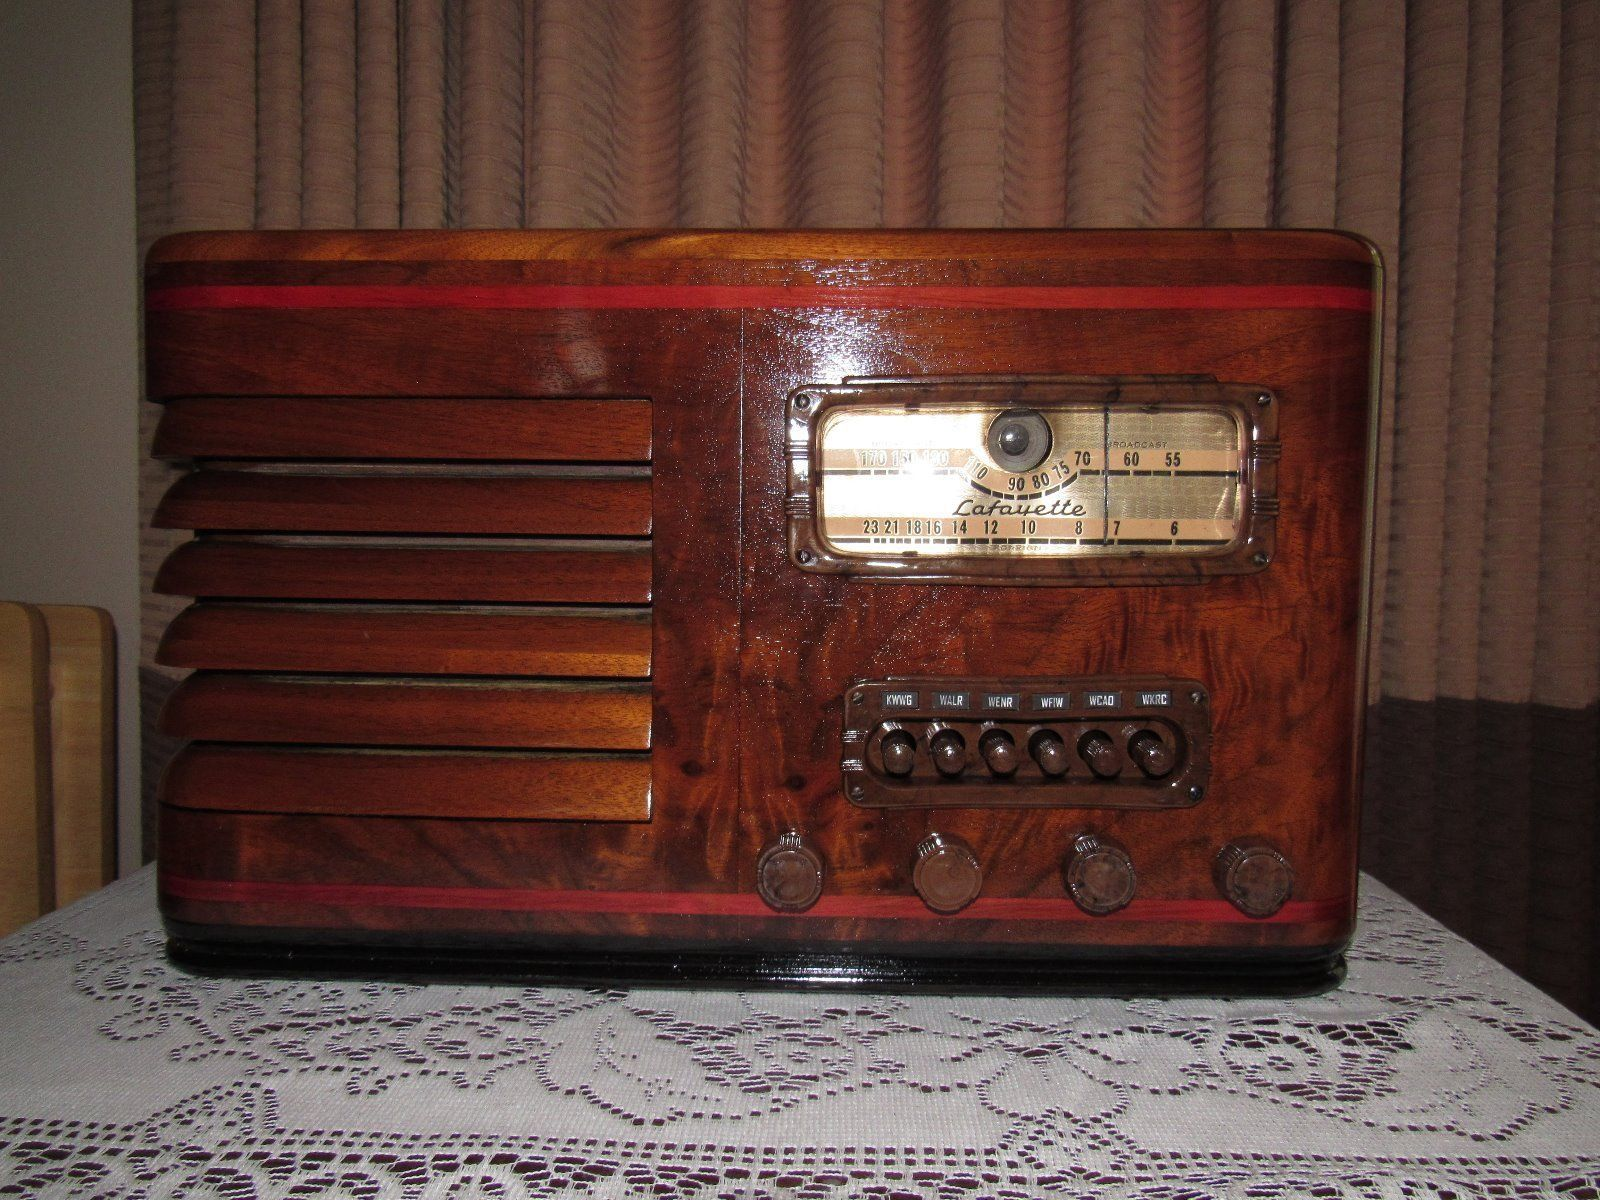 1936 General Electric Floor Radio Antique Philco Lowboy